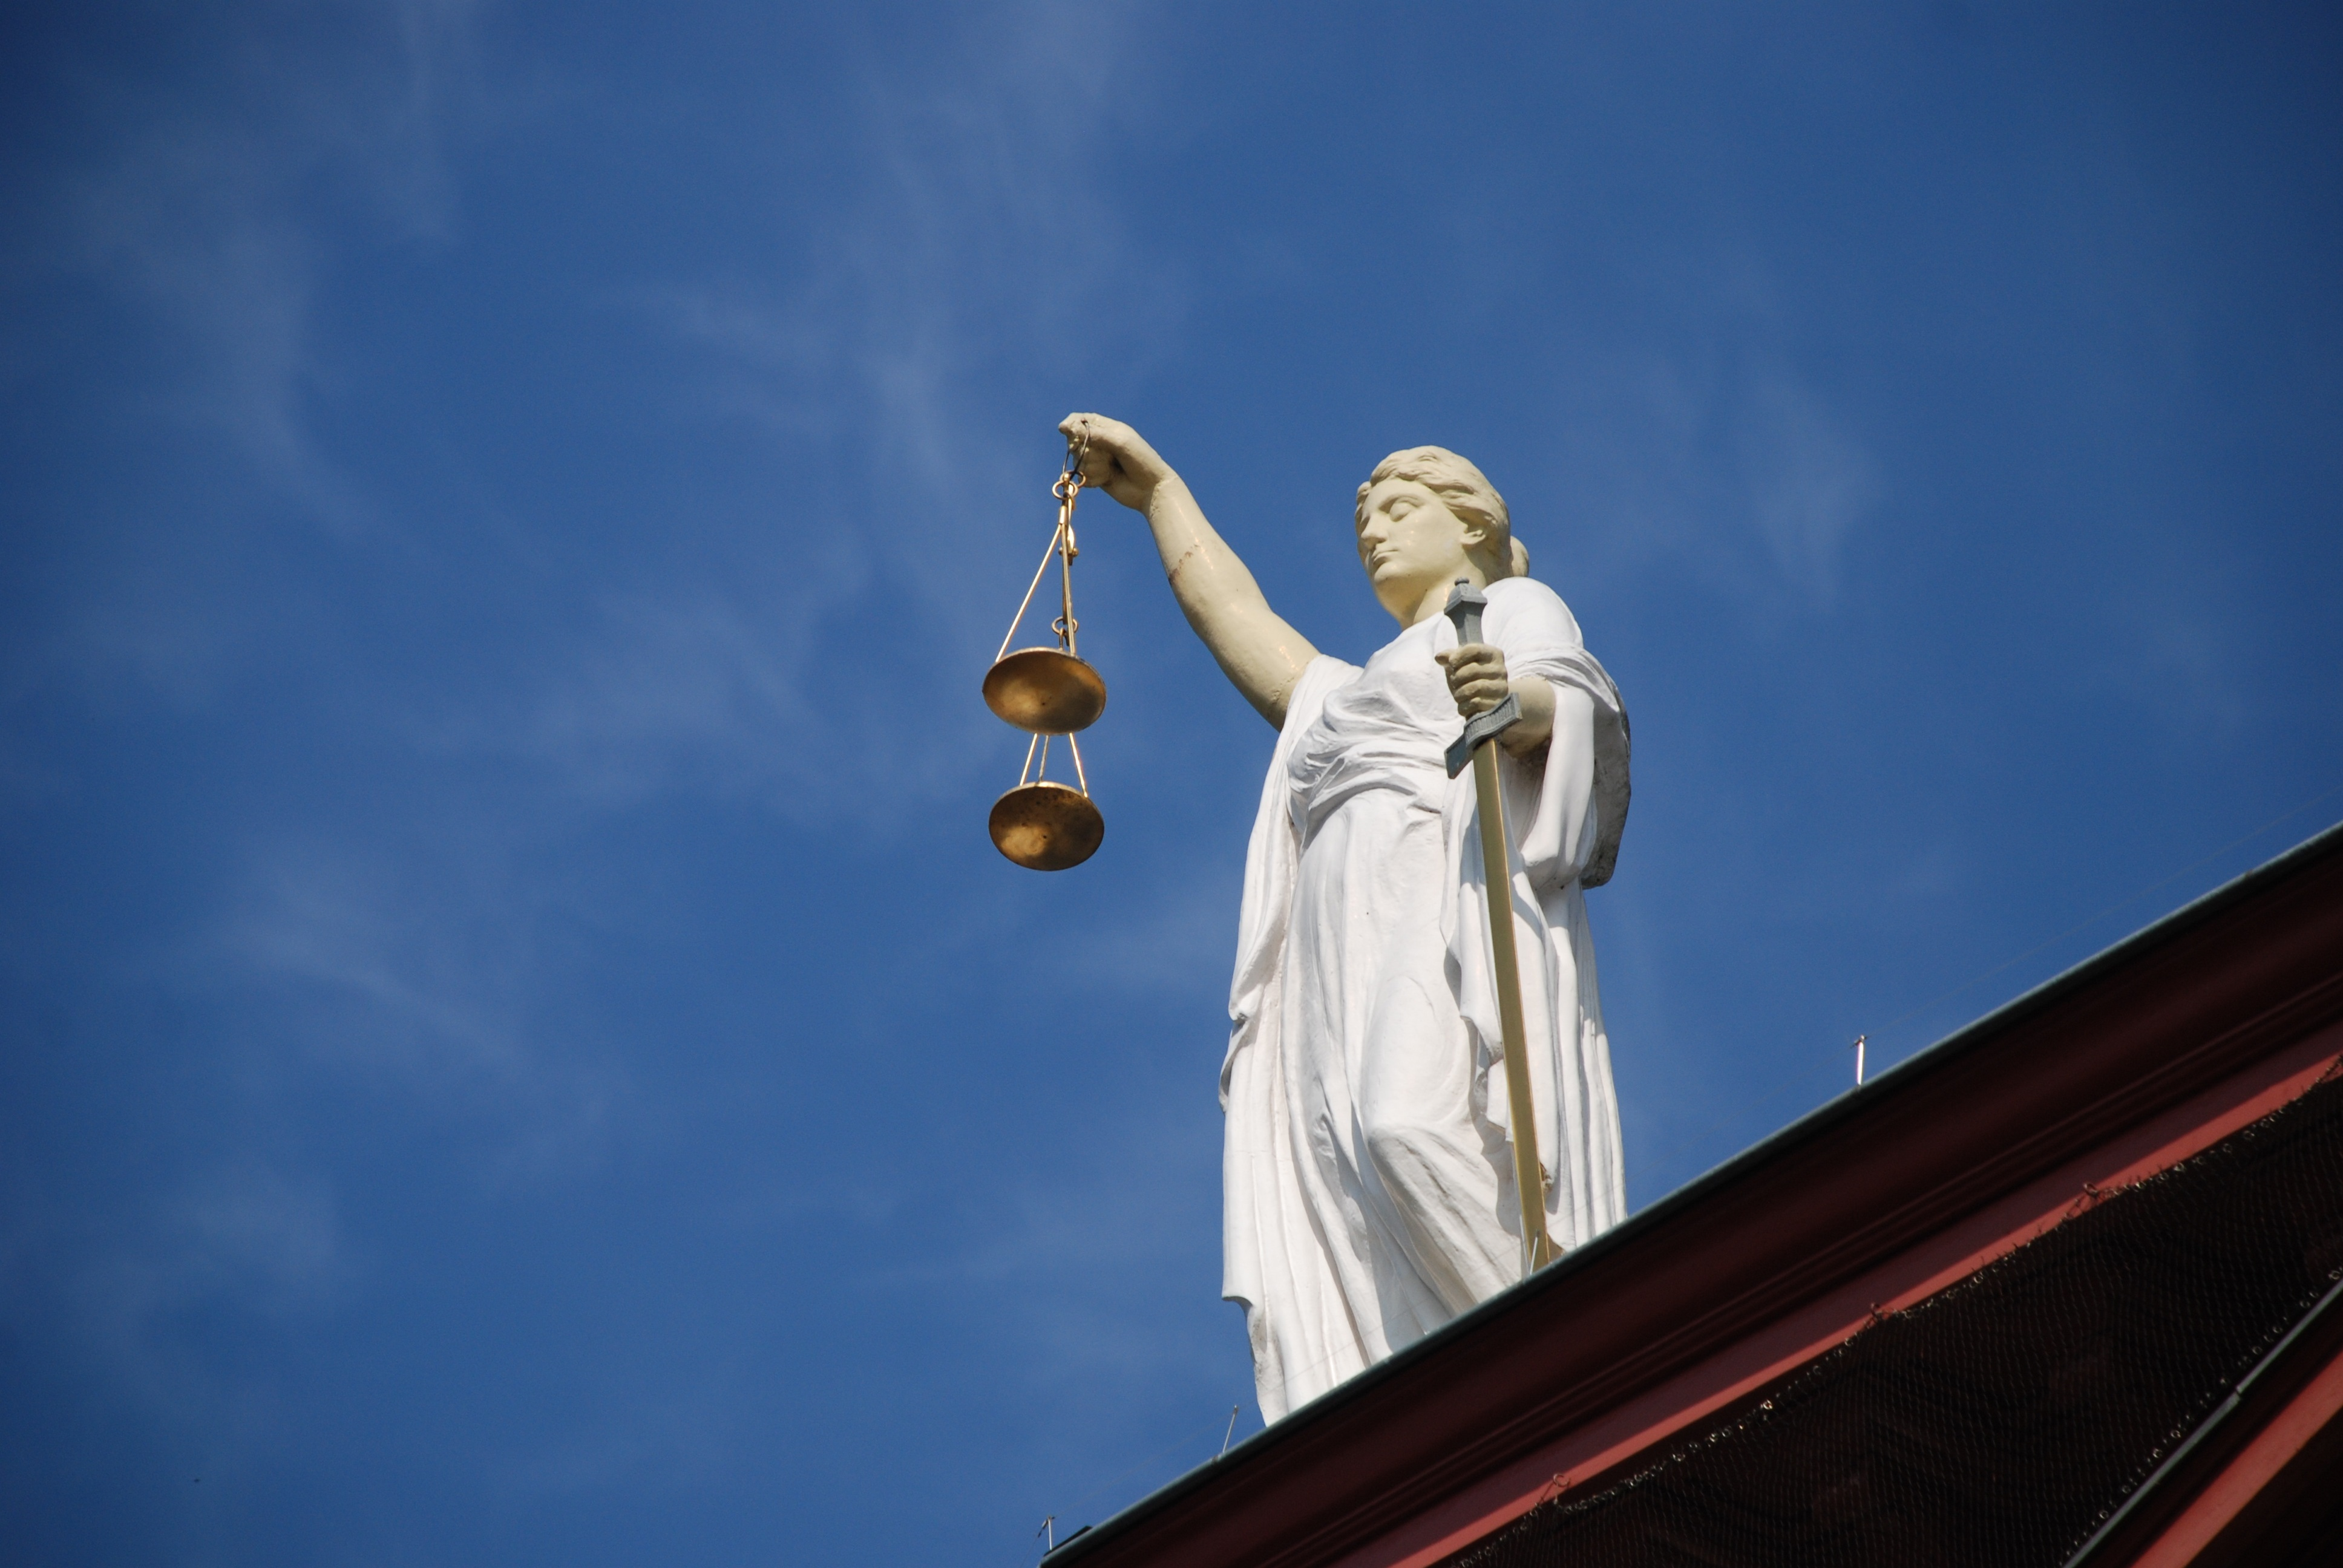 Statue of Lady Justice with Scales.